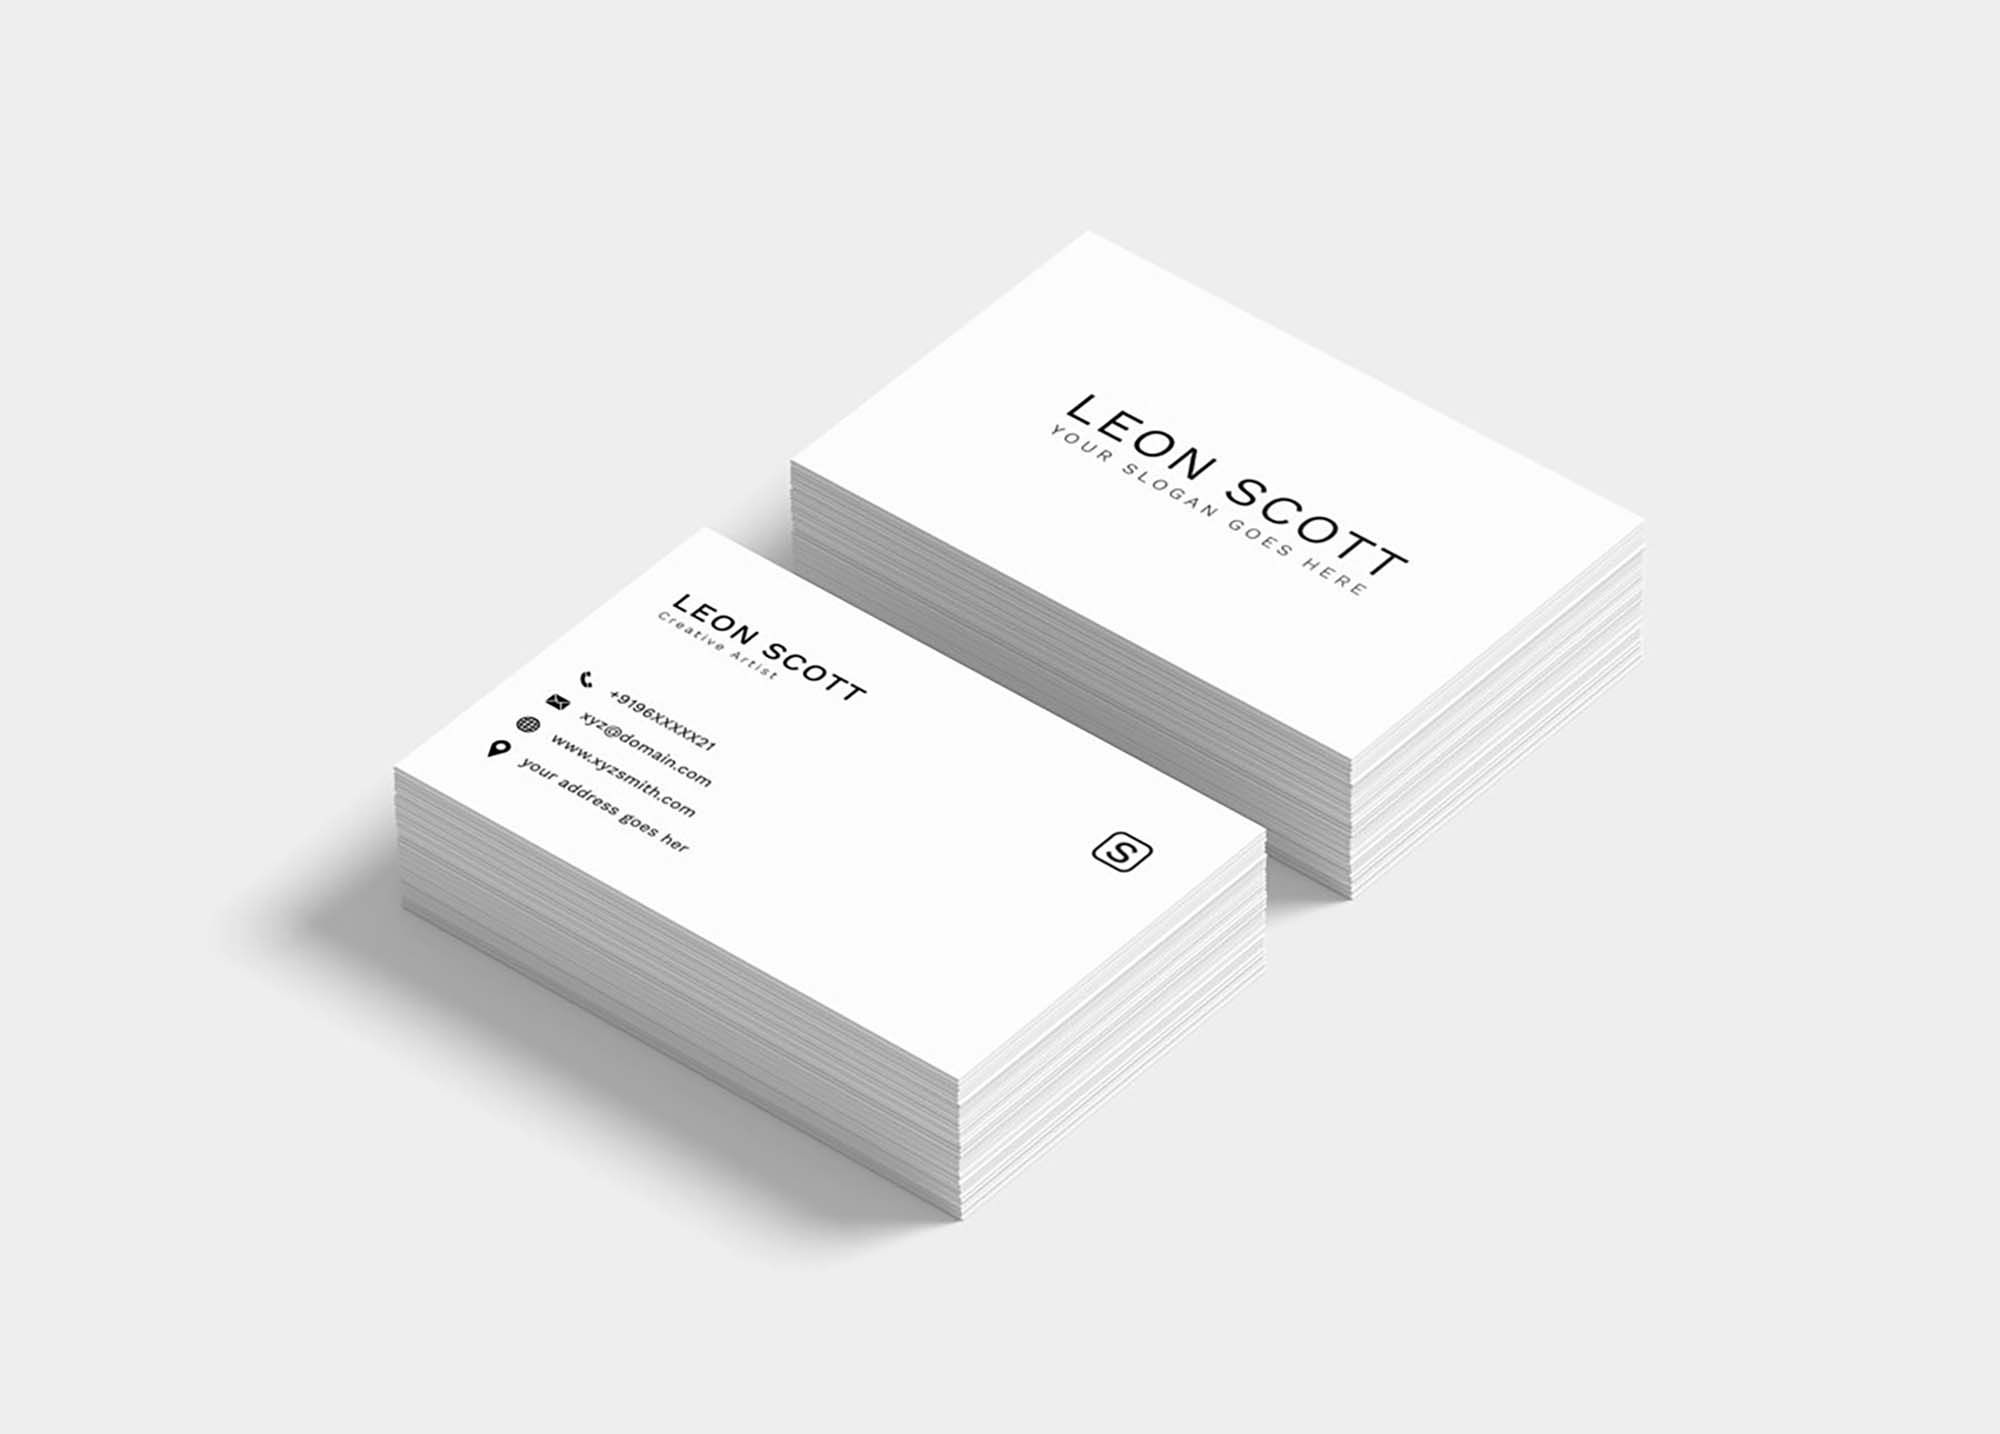 002 Best Simple Busines Card Template Psd Highest Quality  Design In Photoshop Minimalist FreeFull